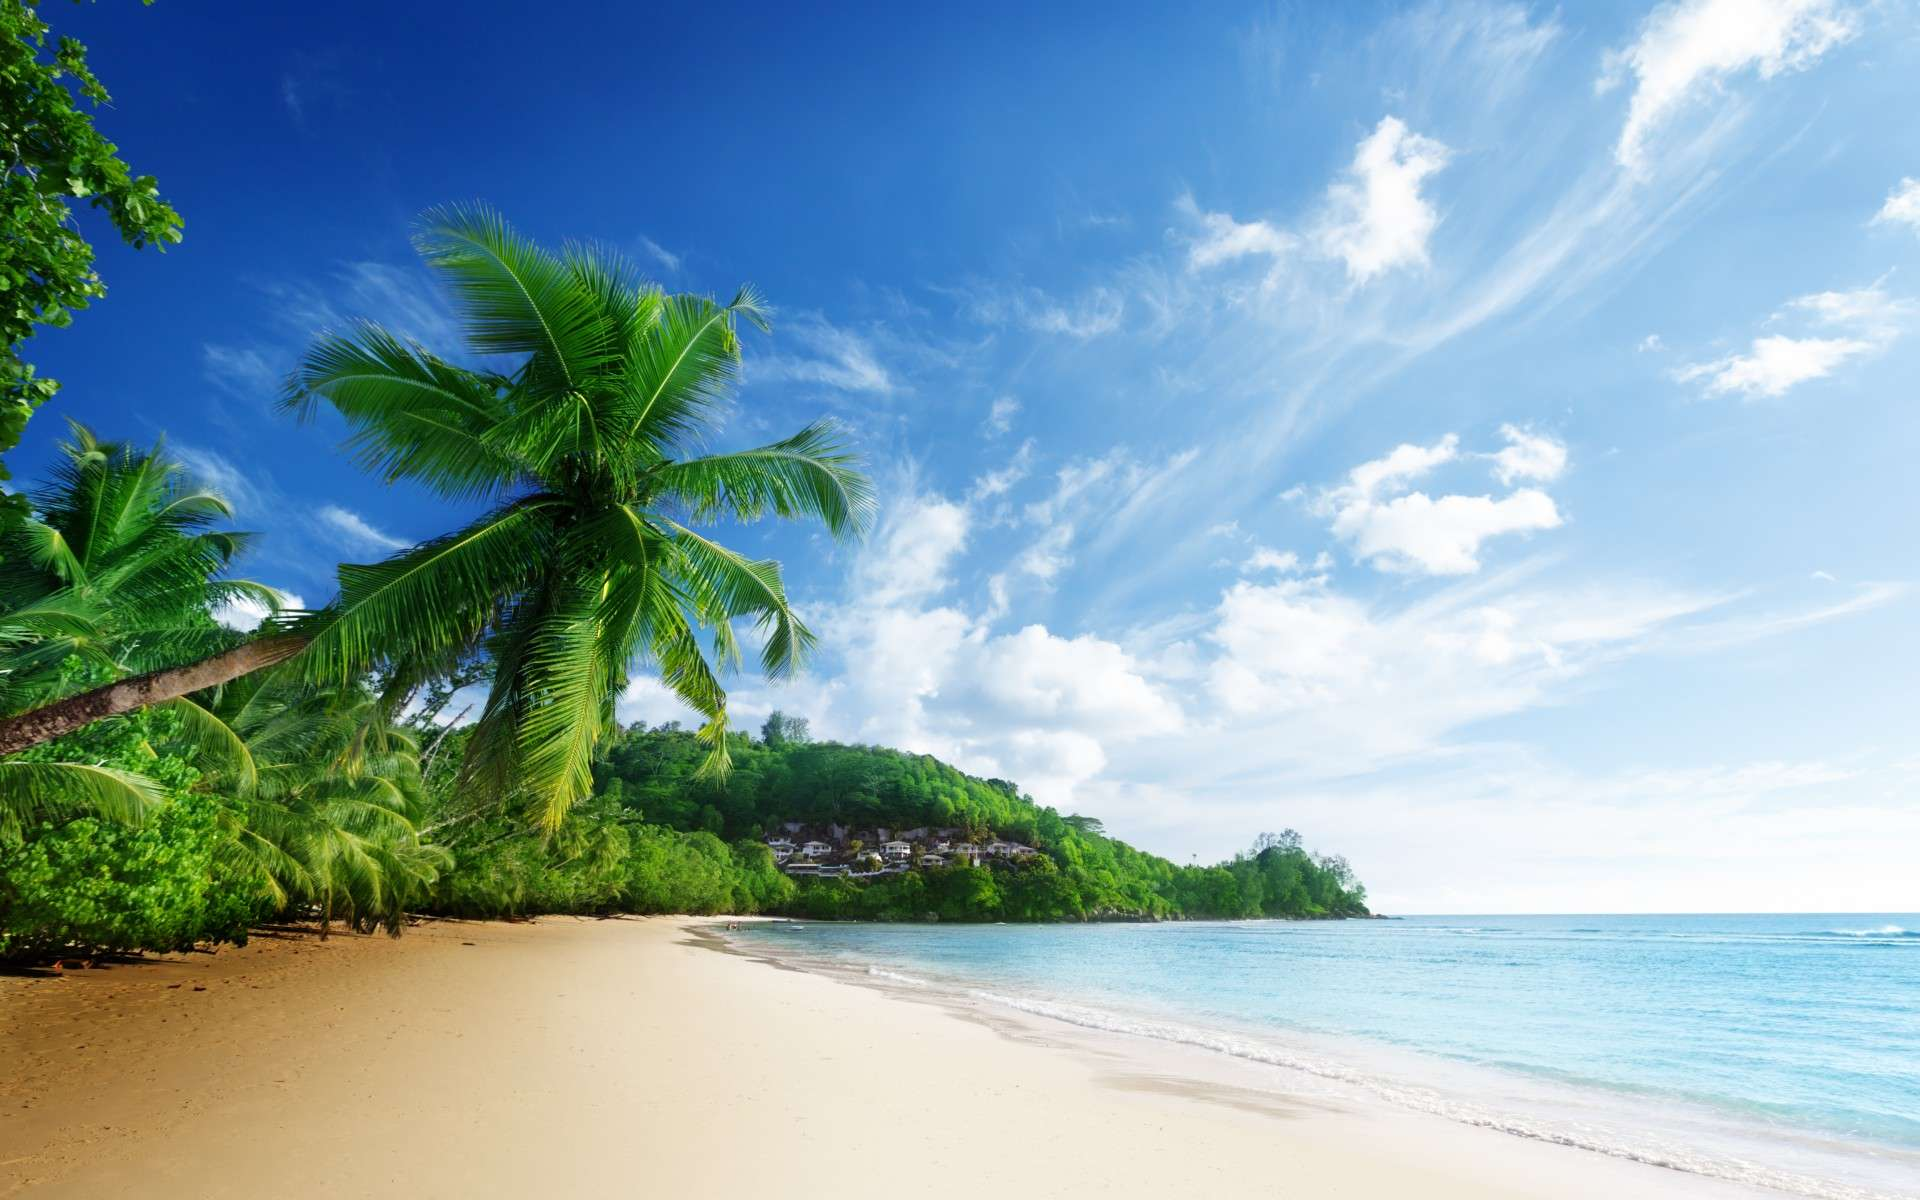 Beach Sceneries Wallpapers